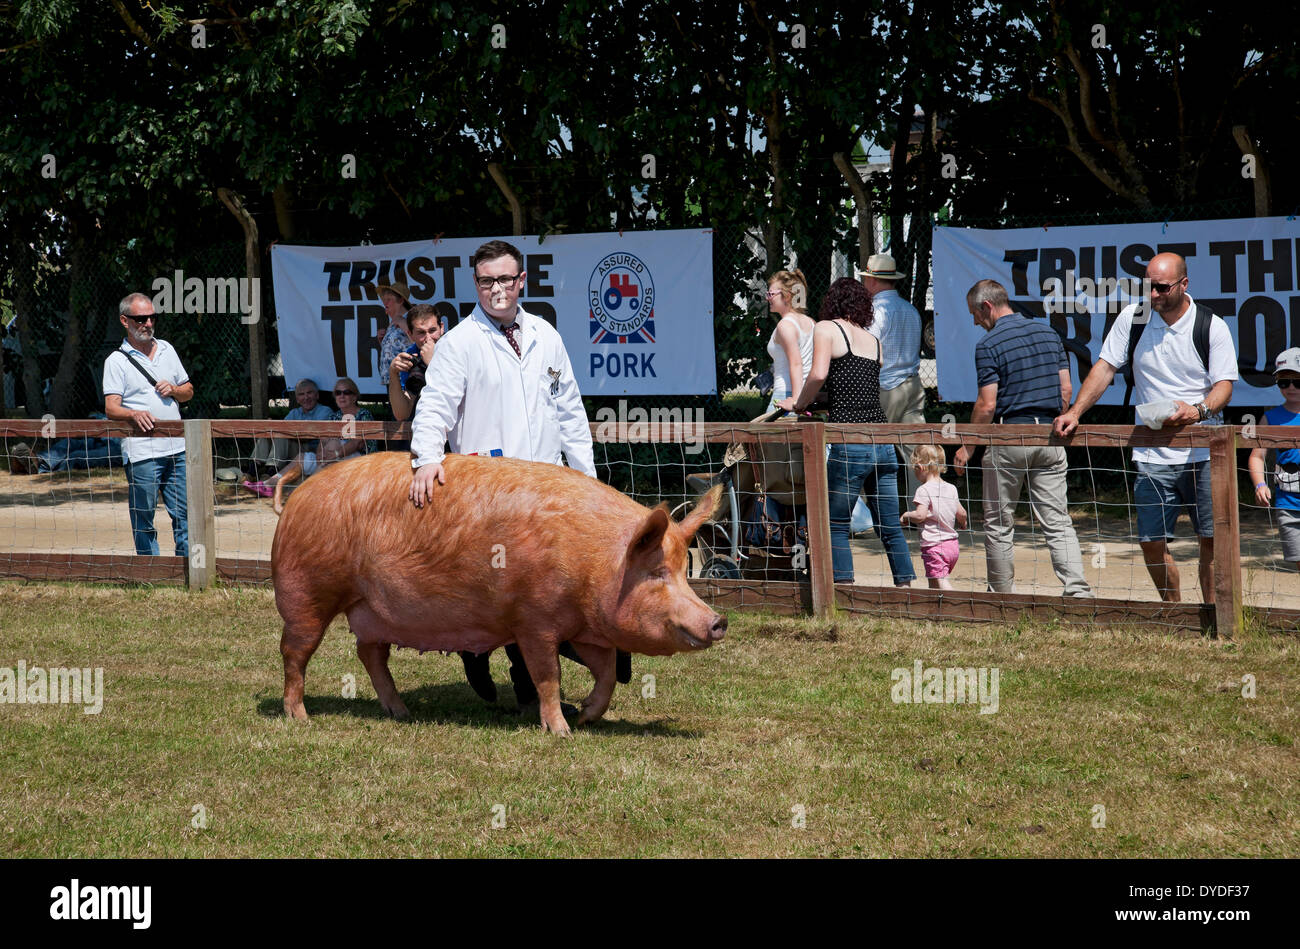 Tamworth pig being judged at the Great Yorkshire Show. Stock Photo